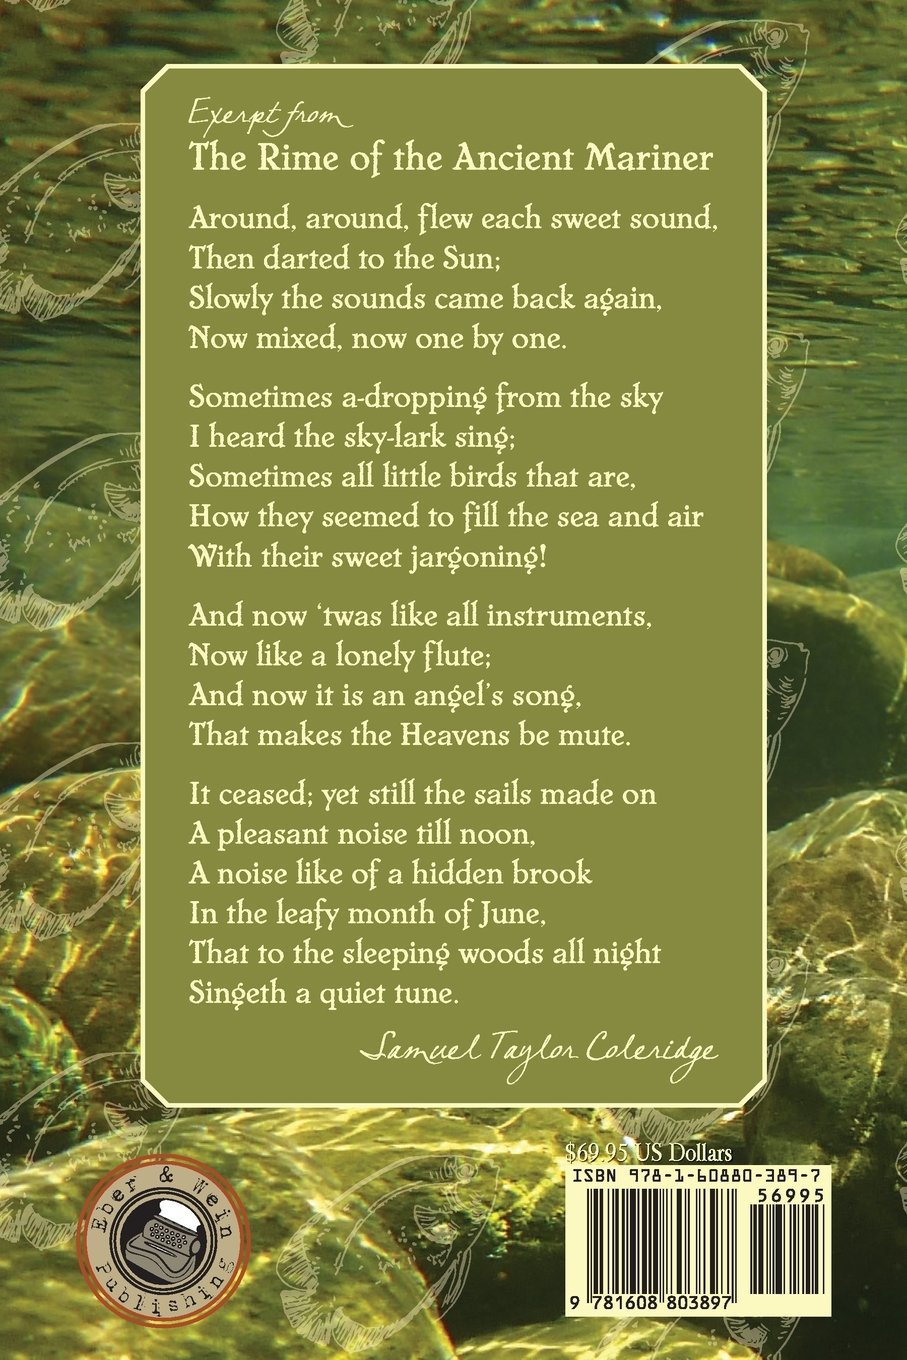 Beyond The Sea: Tranquility: Eber & Wein: 9781608803897: Amazon: Books